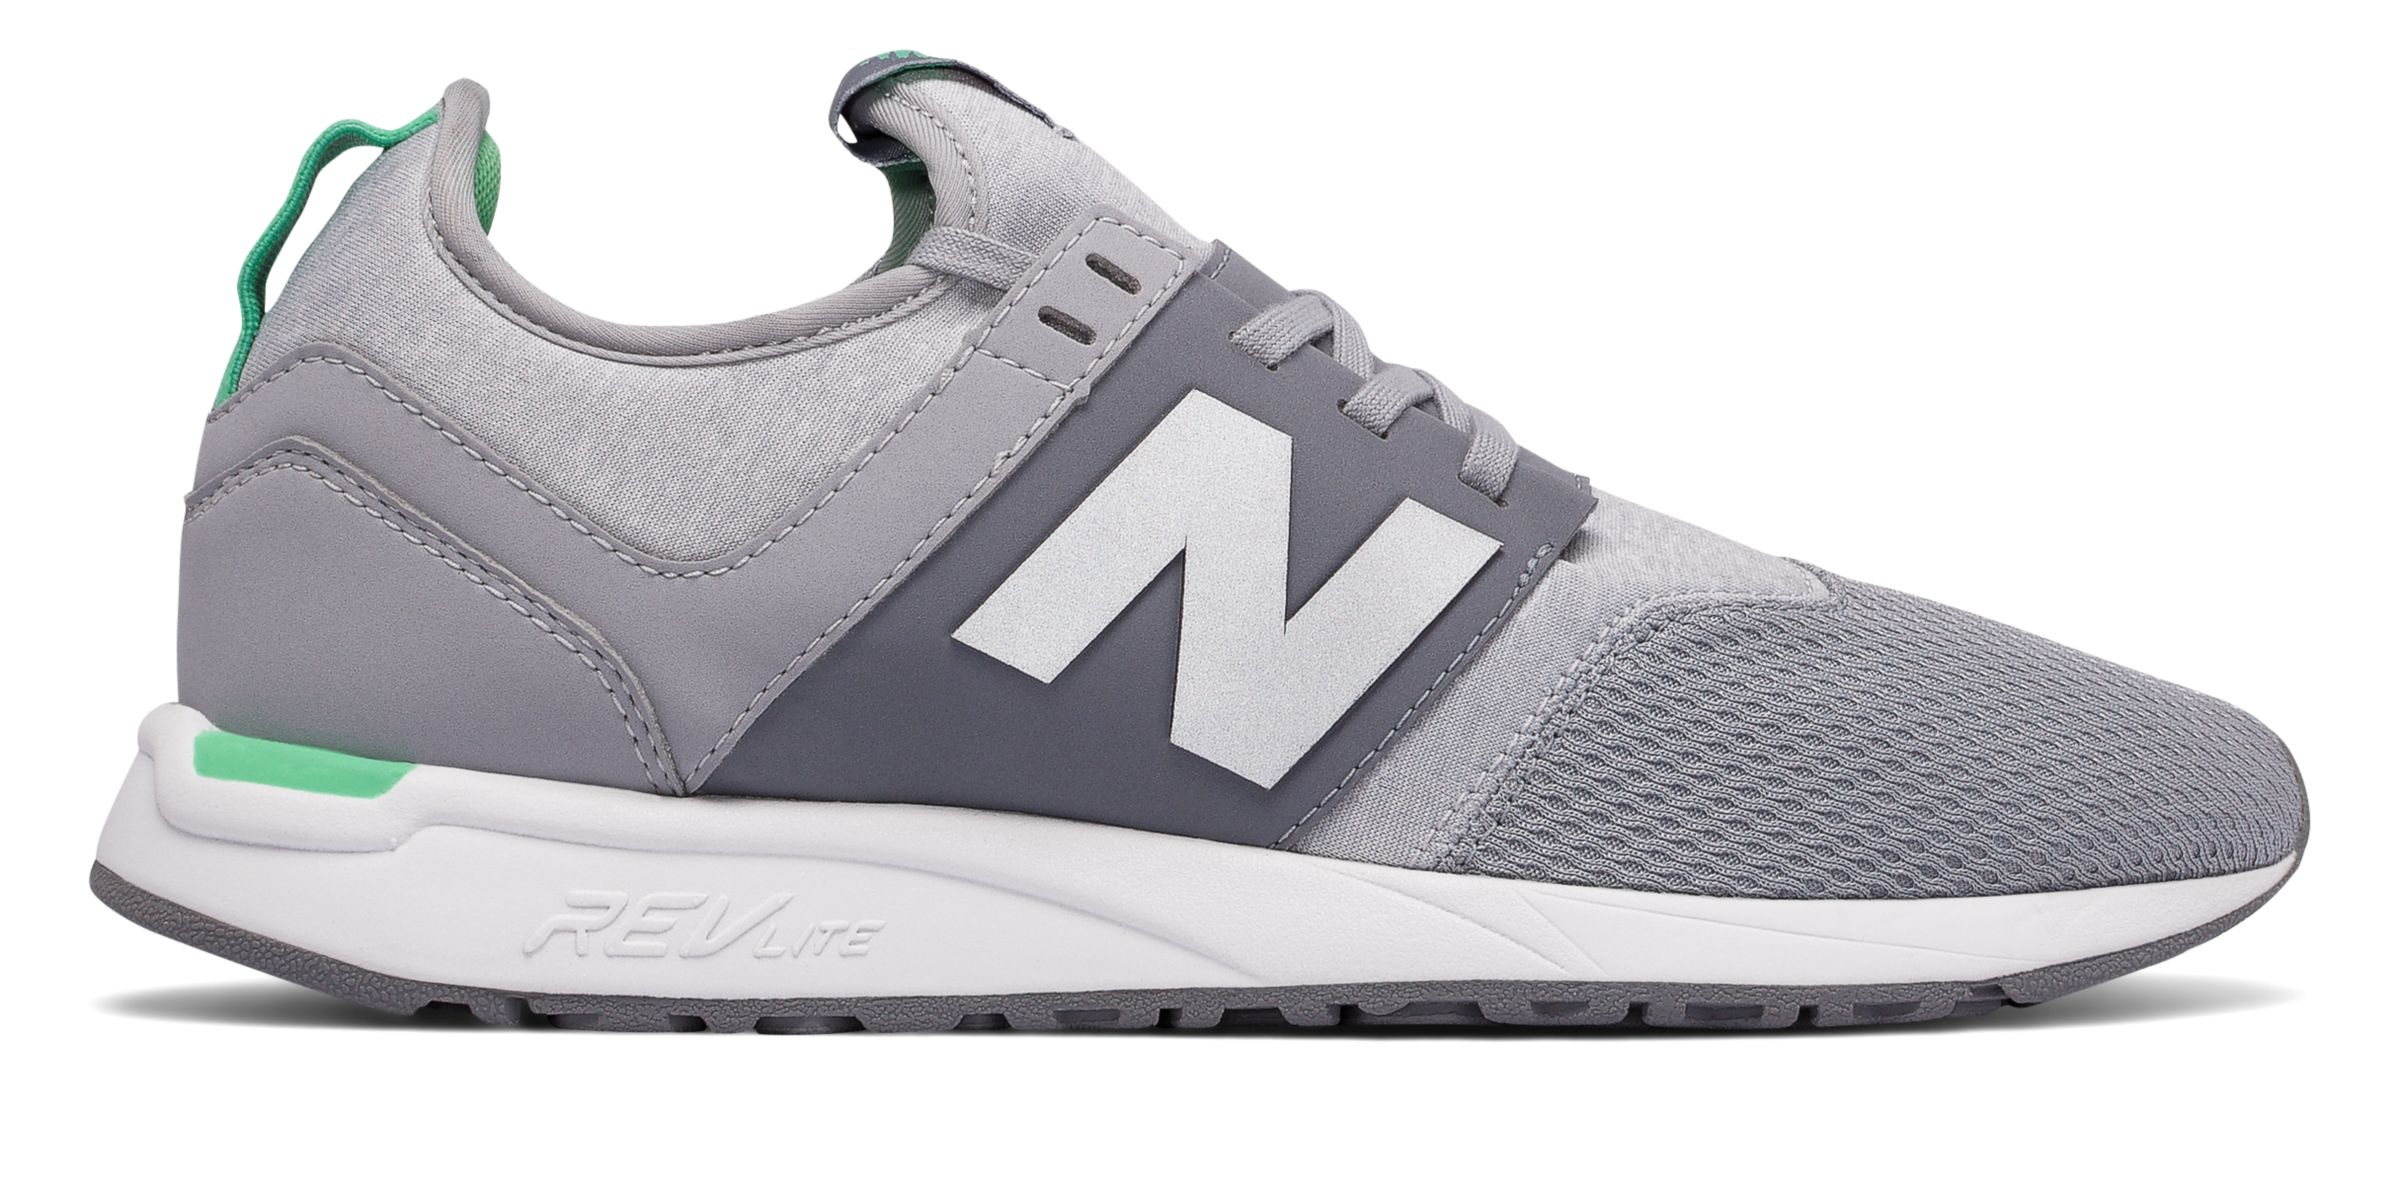 NB 247 Classic, Silver Mink with Vivid Jade